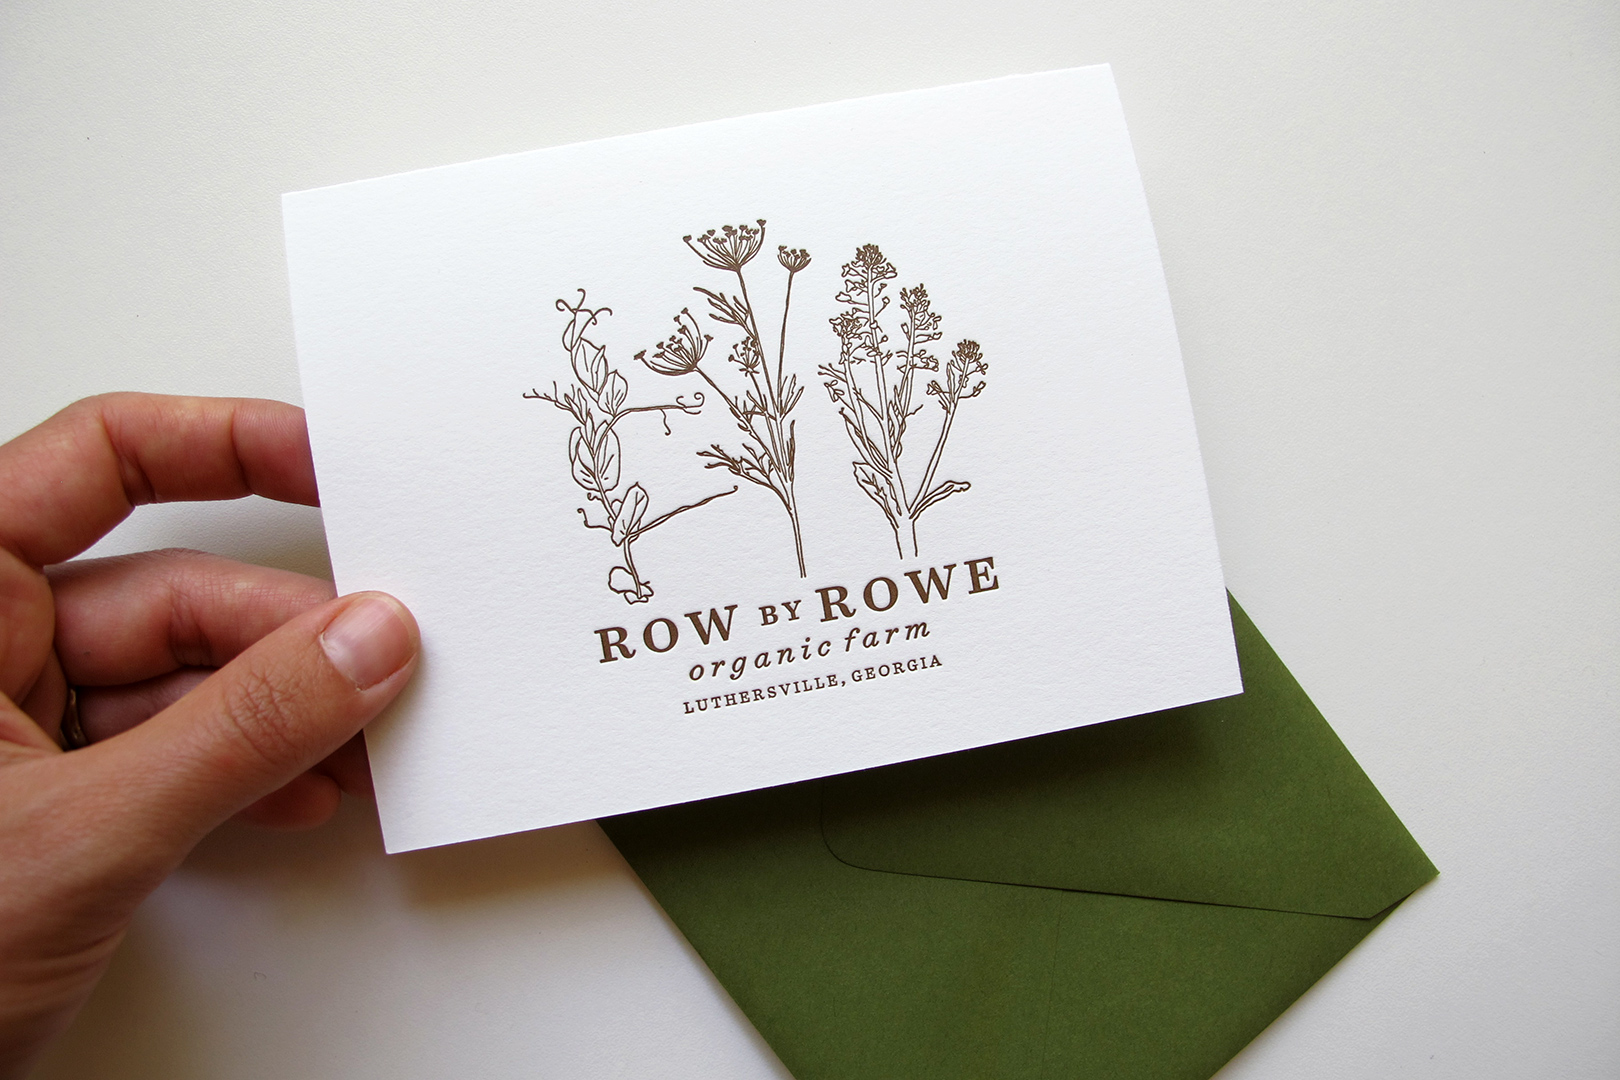 Bradning & Letterpress Collateral: Row by Rowe Farm